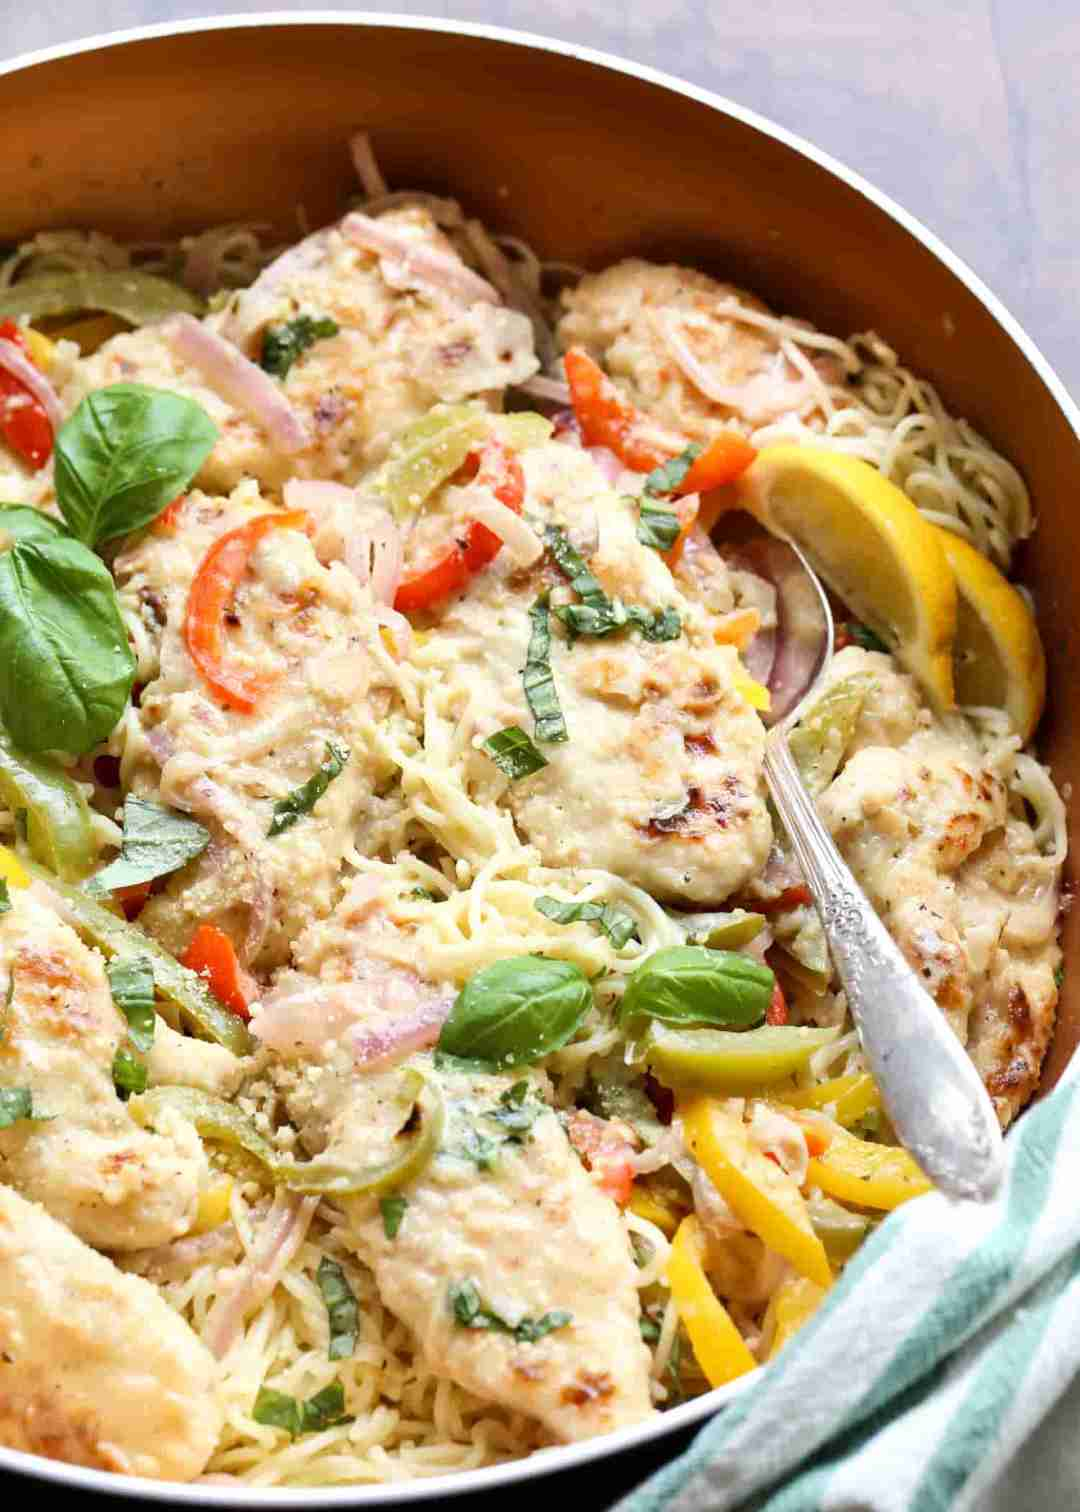 Angel hair pasta in a skillet with chicken and vegetable garnished with fresh lemons.